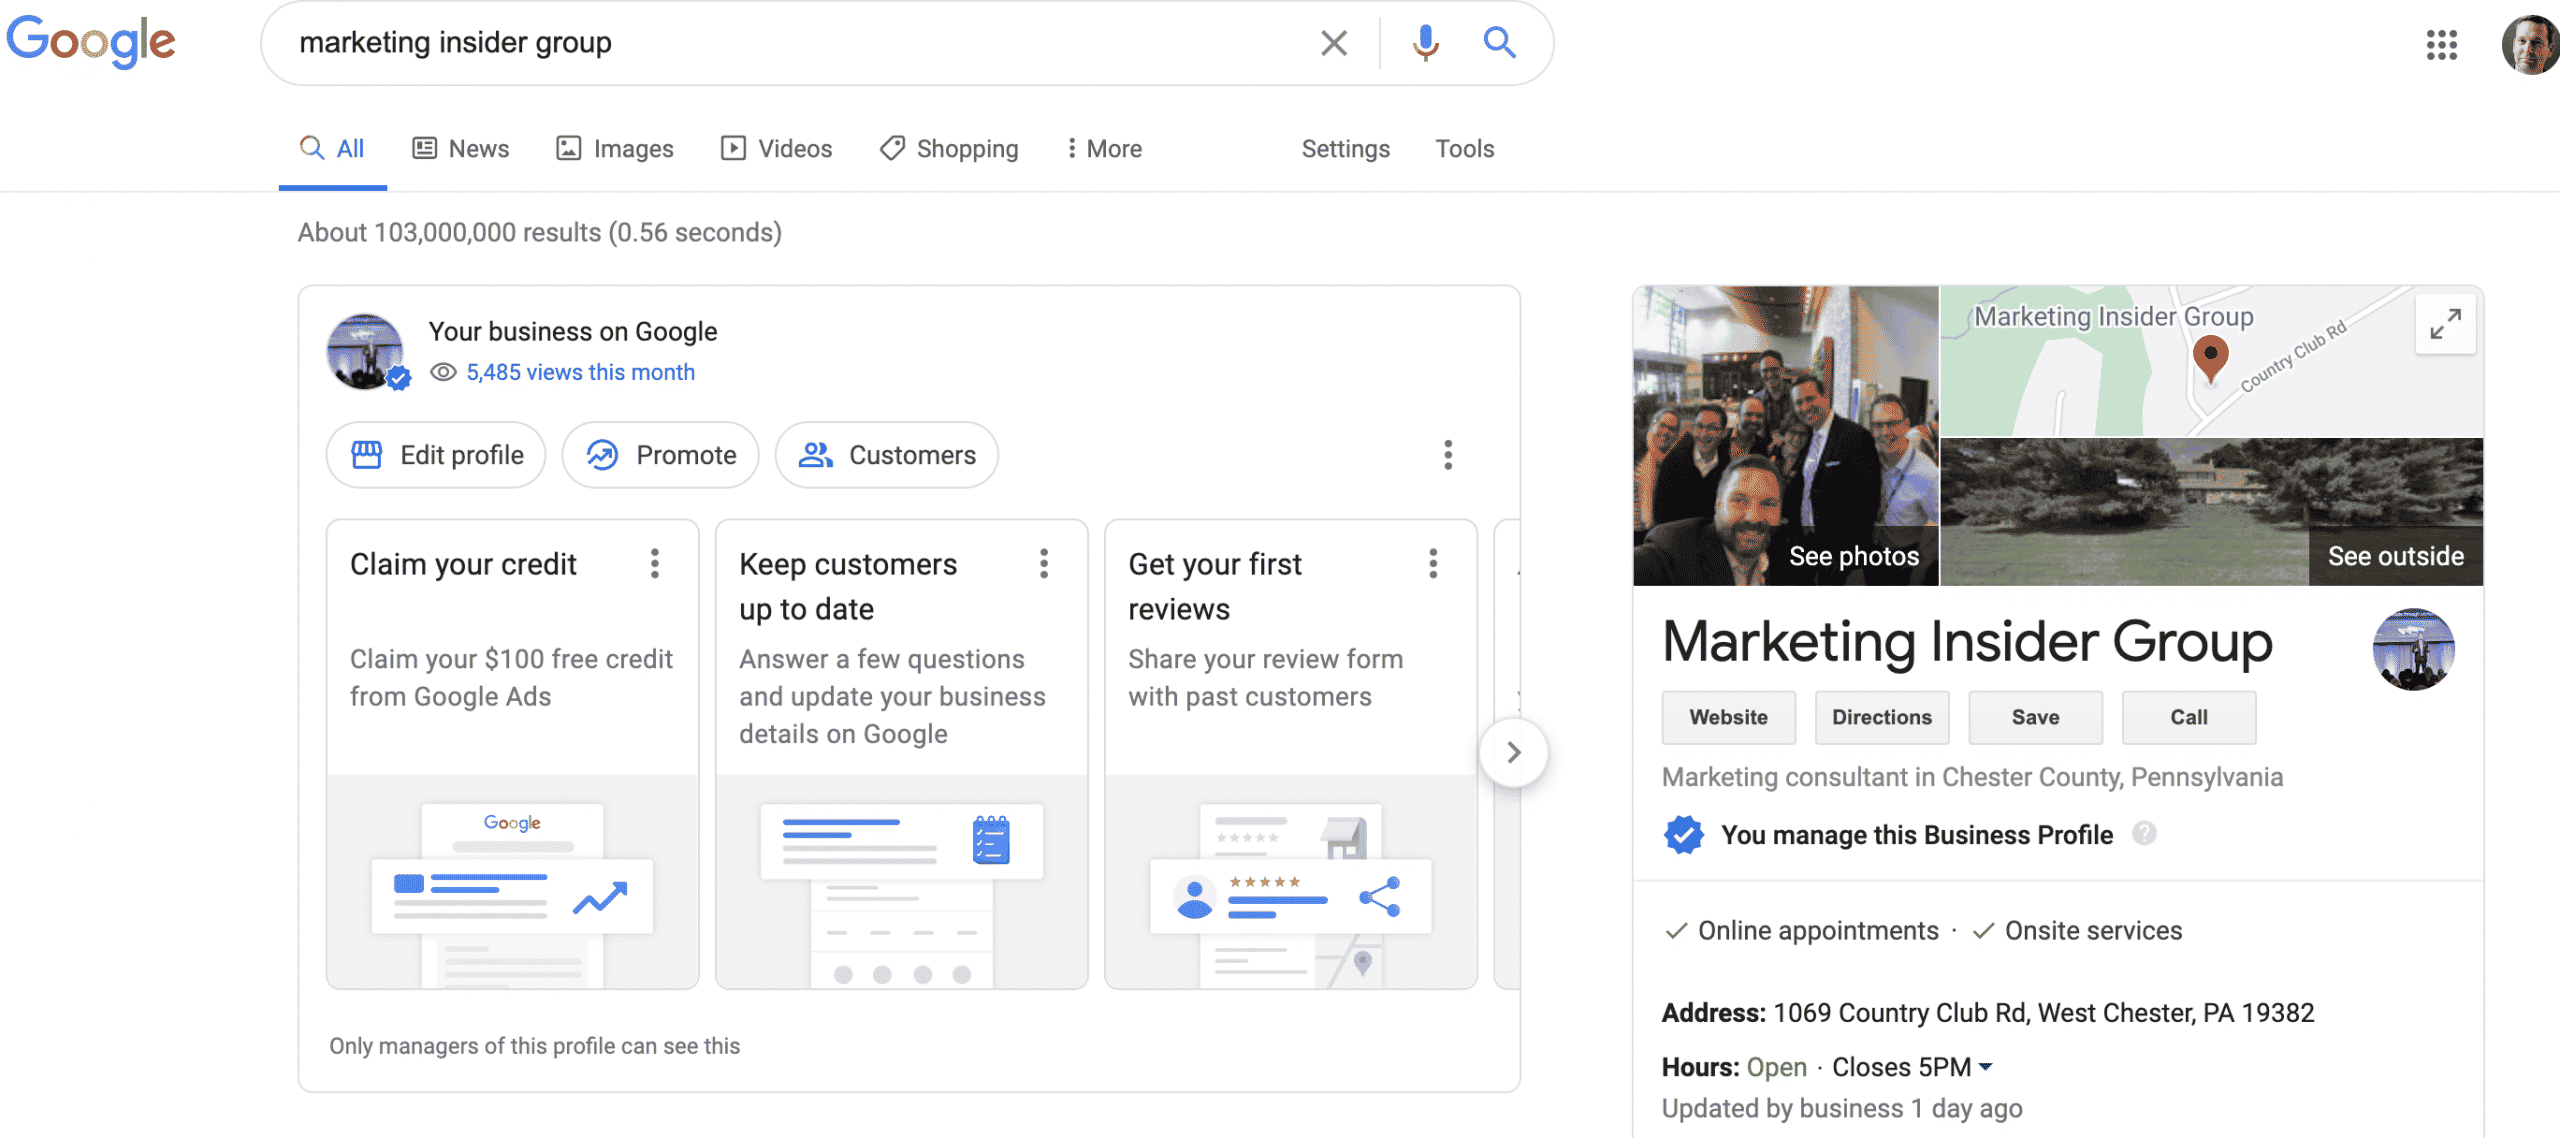 How to Add Your Business to Google